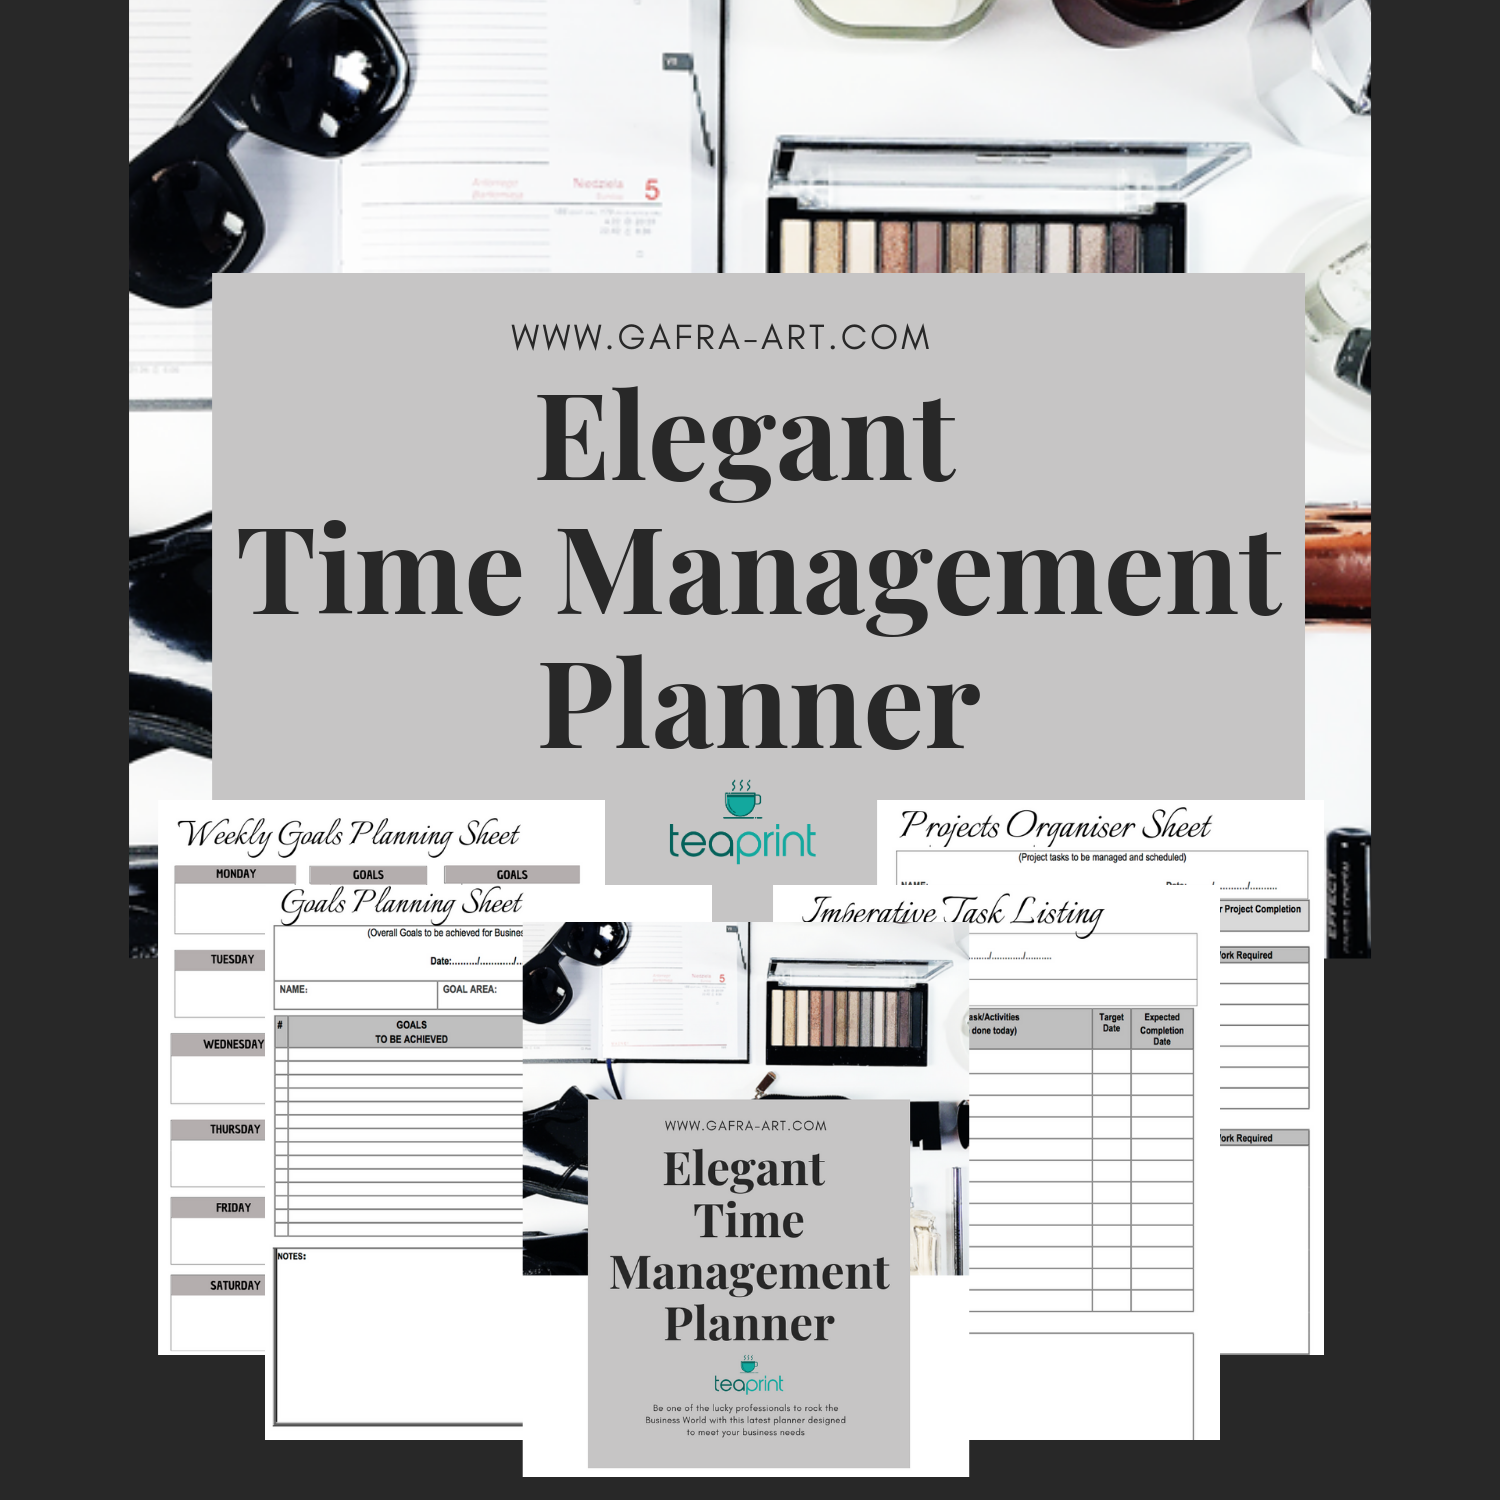 Time management made easy with this method